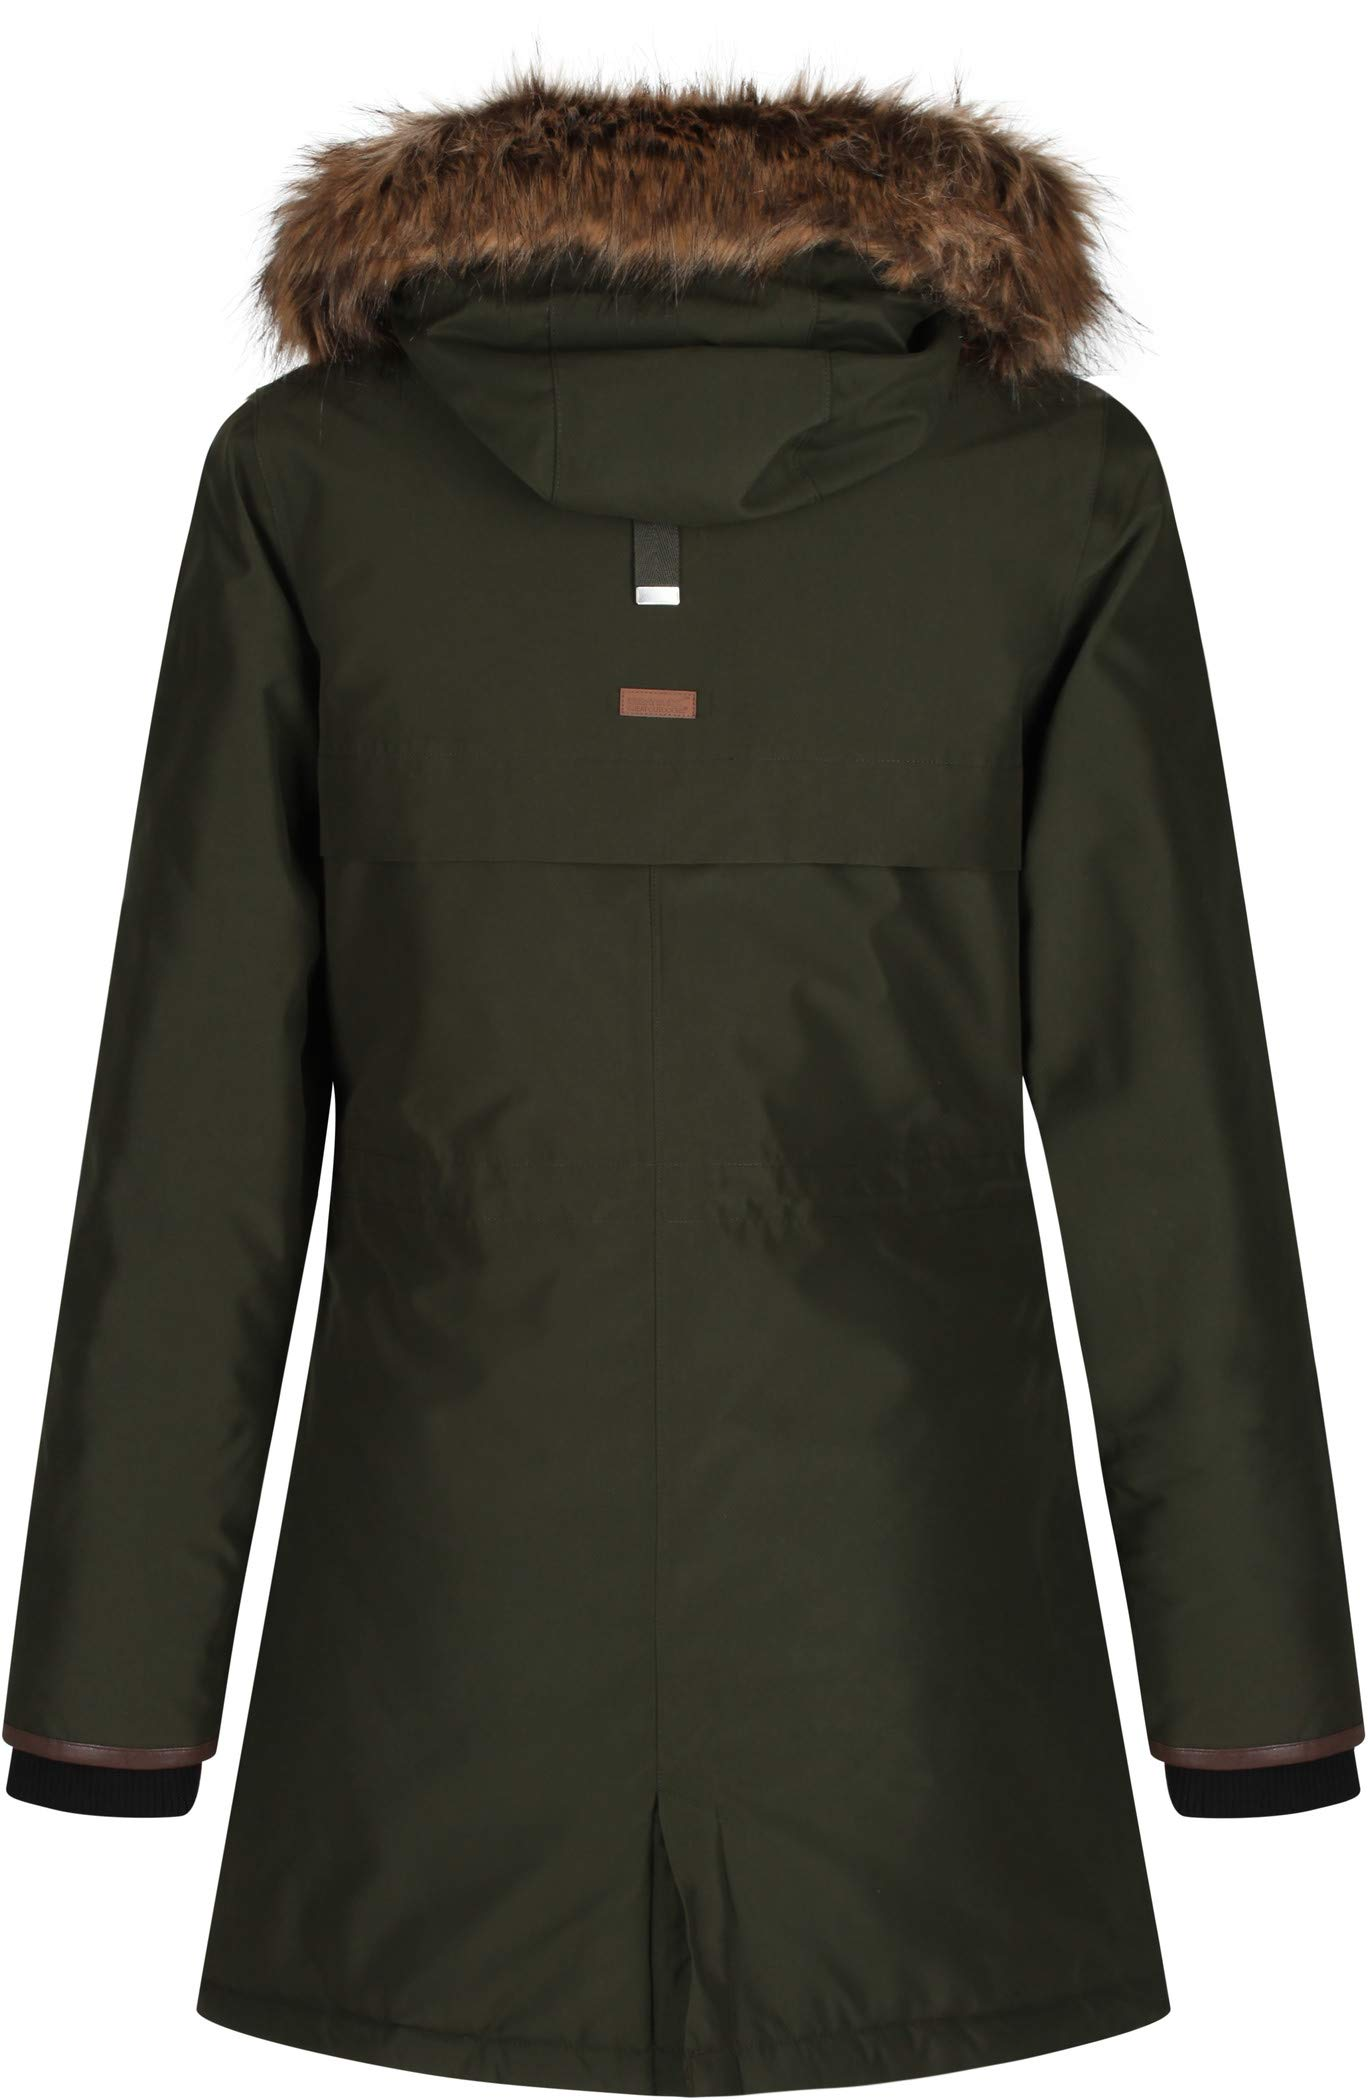 Regatta Women's Safiyya Waterproof & Breathable Down-touch Insulated Faux Fur Hooded Winter Jacket